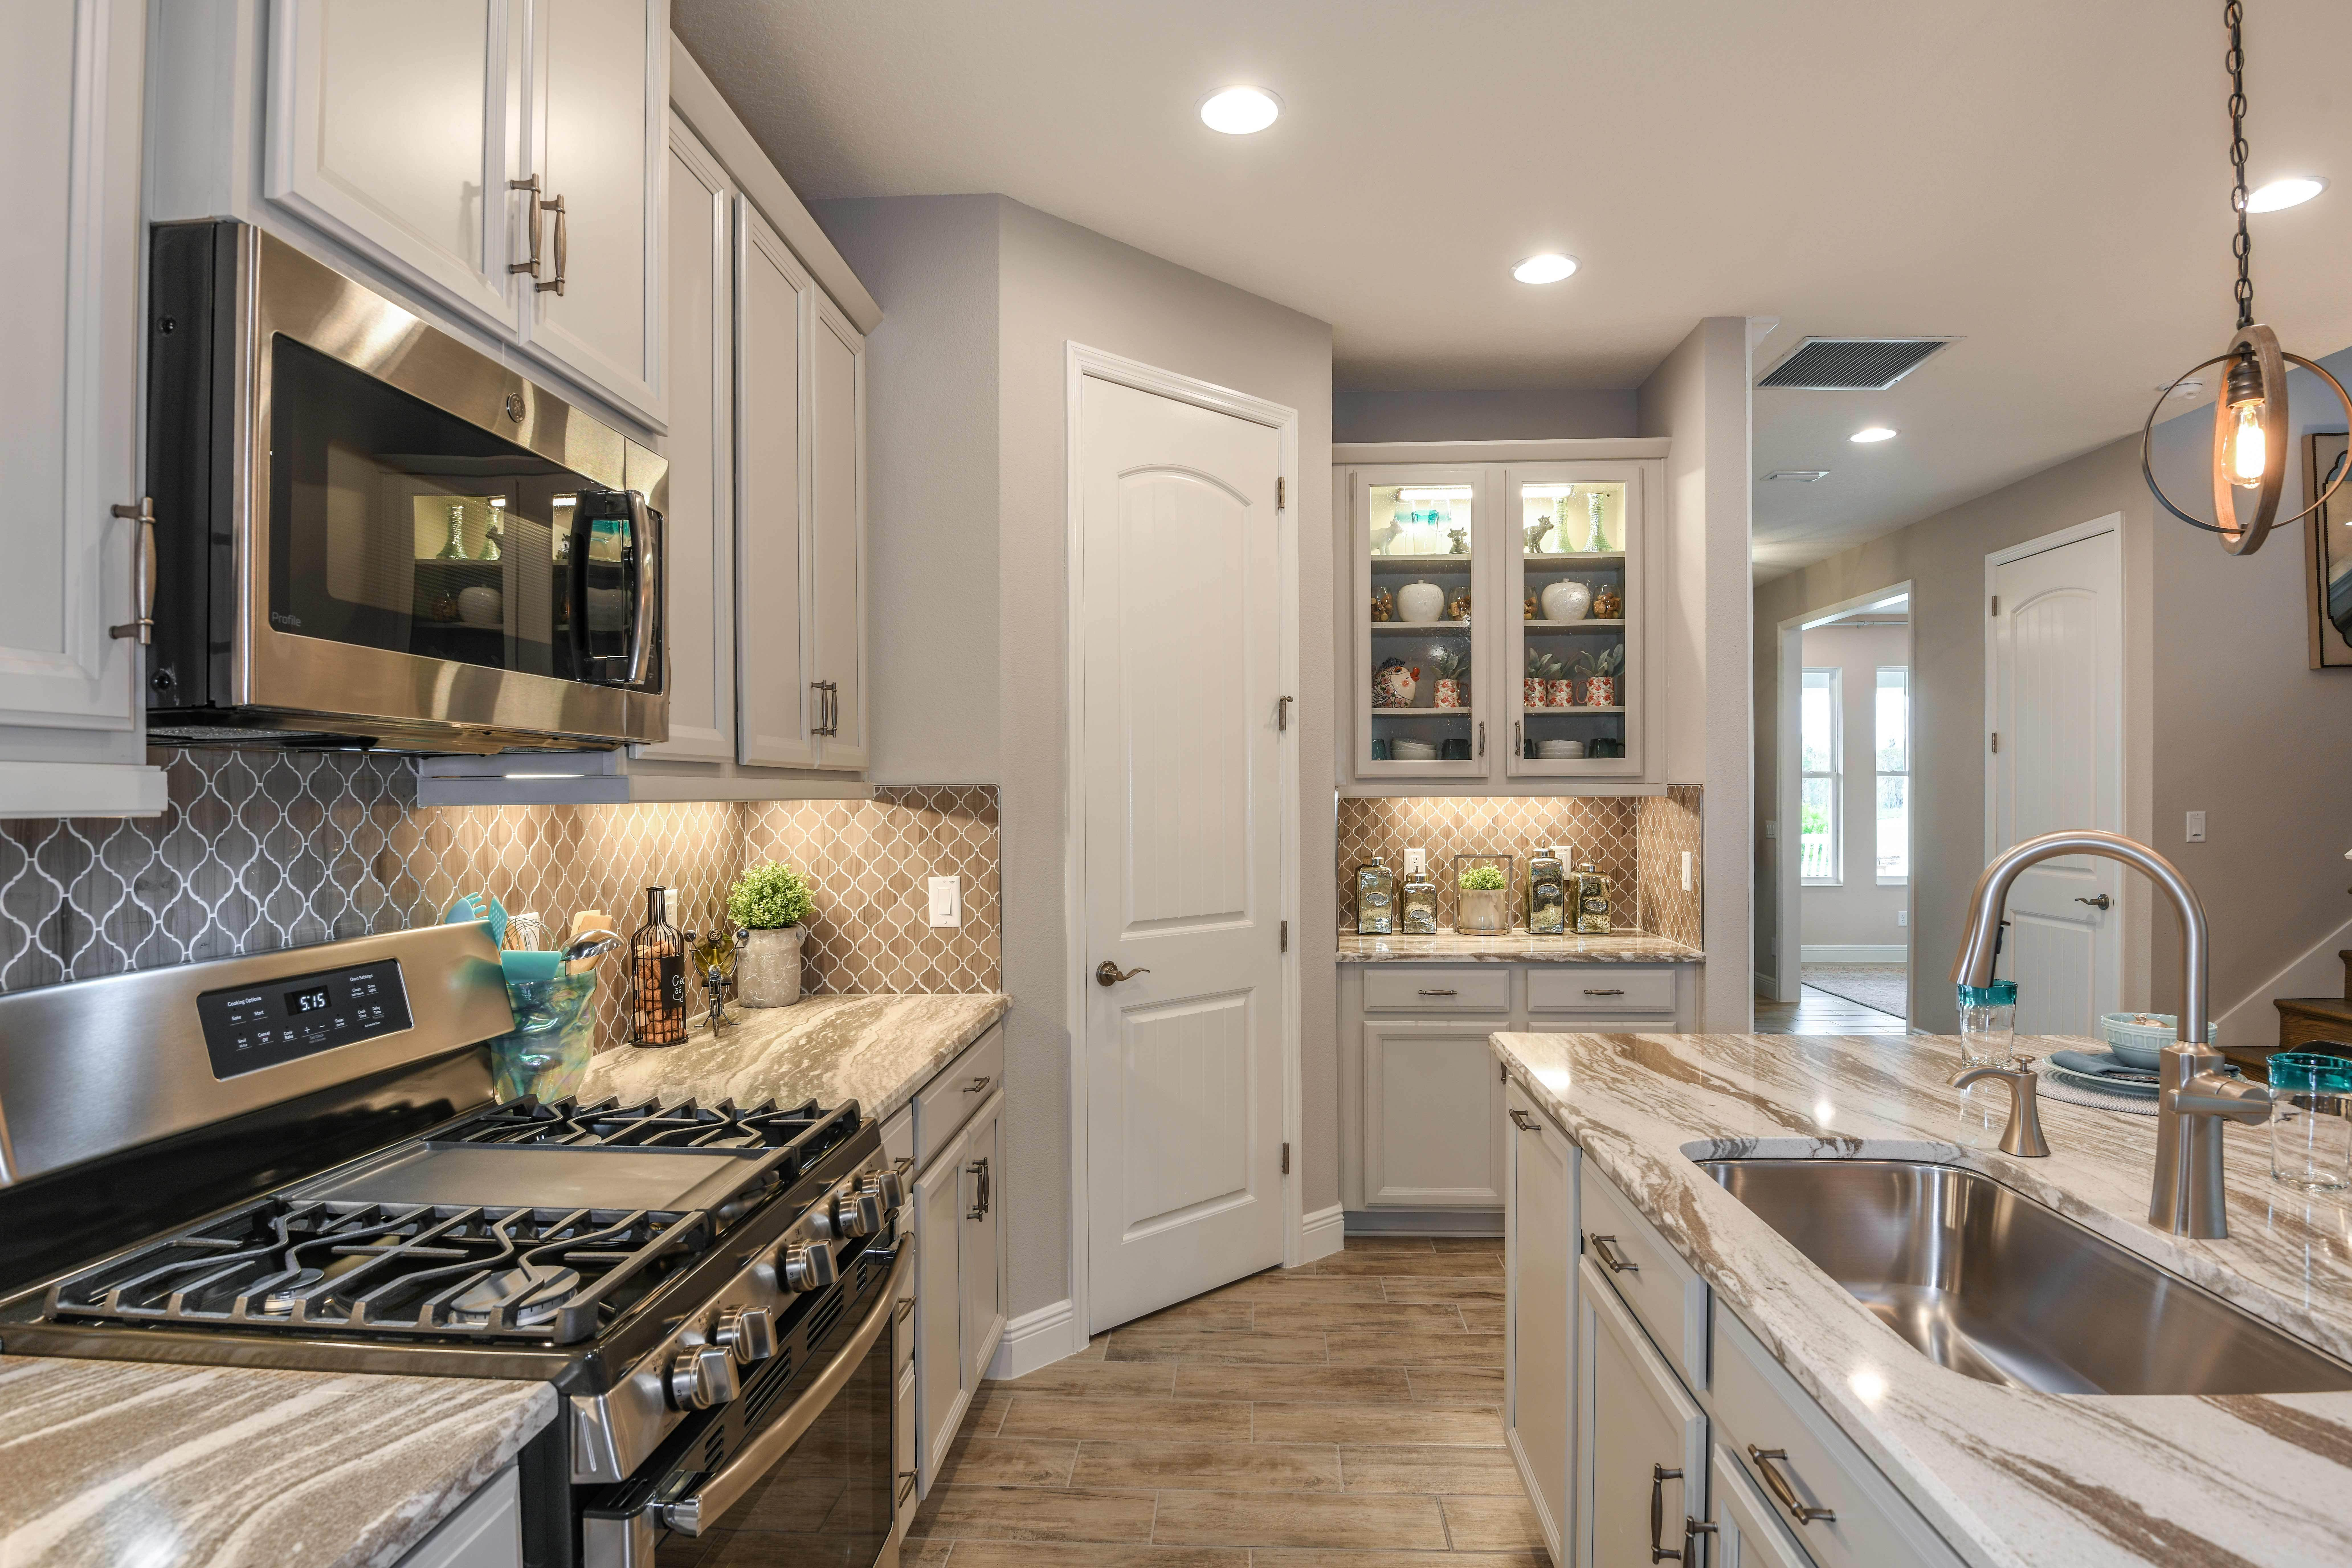 Kitchen featured in the Avocet II By Homes by WestBay in Tampa-St. Petersburg, FL